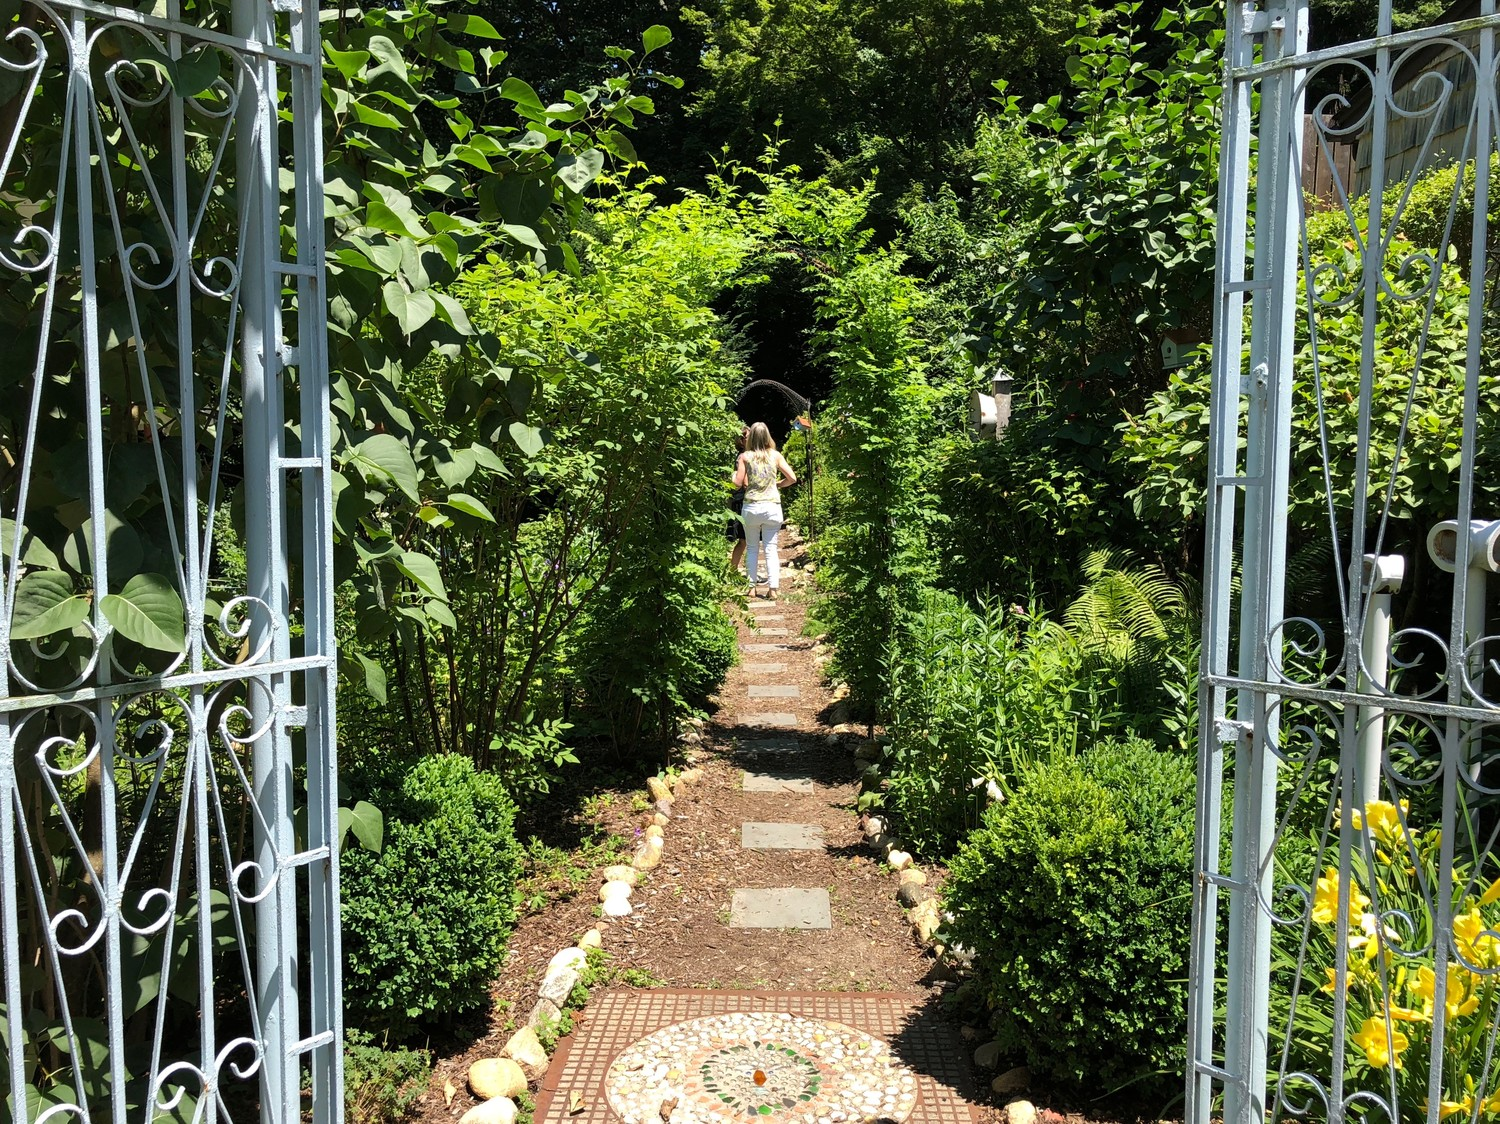 Visitors to Posey Heisig's French-inspired gardens were enveloped in a sea of green as they entered the backyard. She has been designing gardens for 30 years.